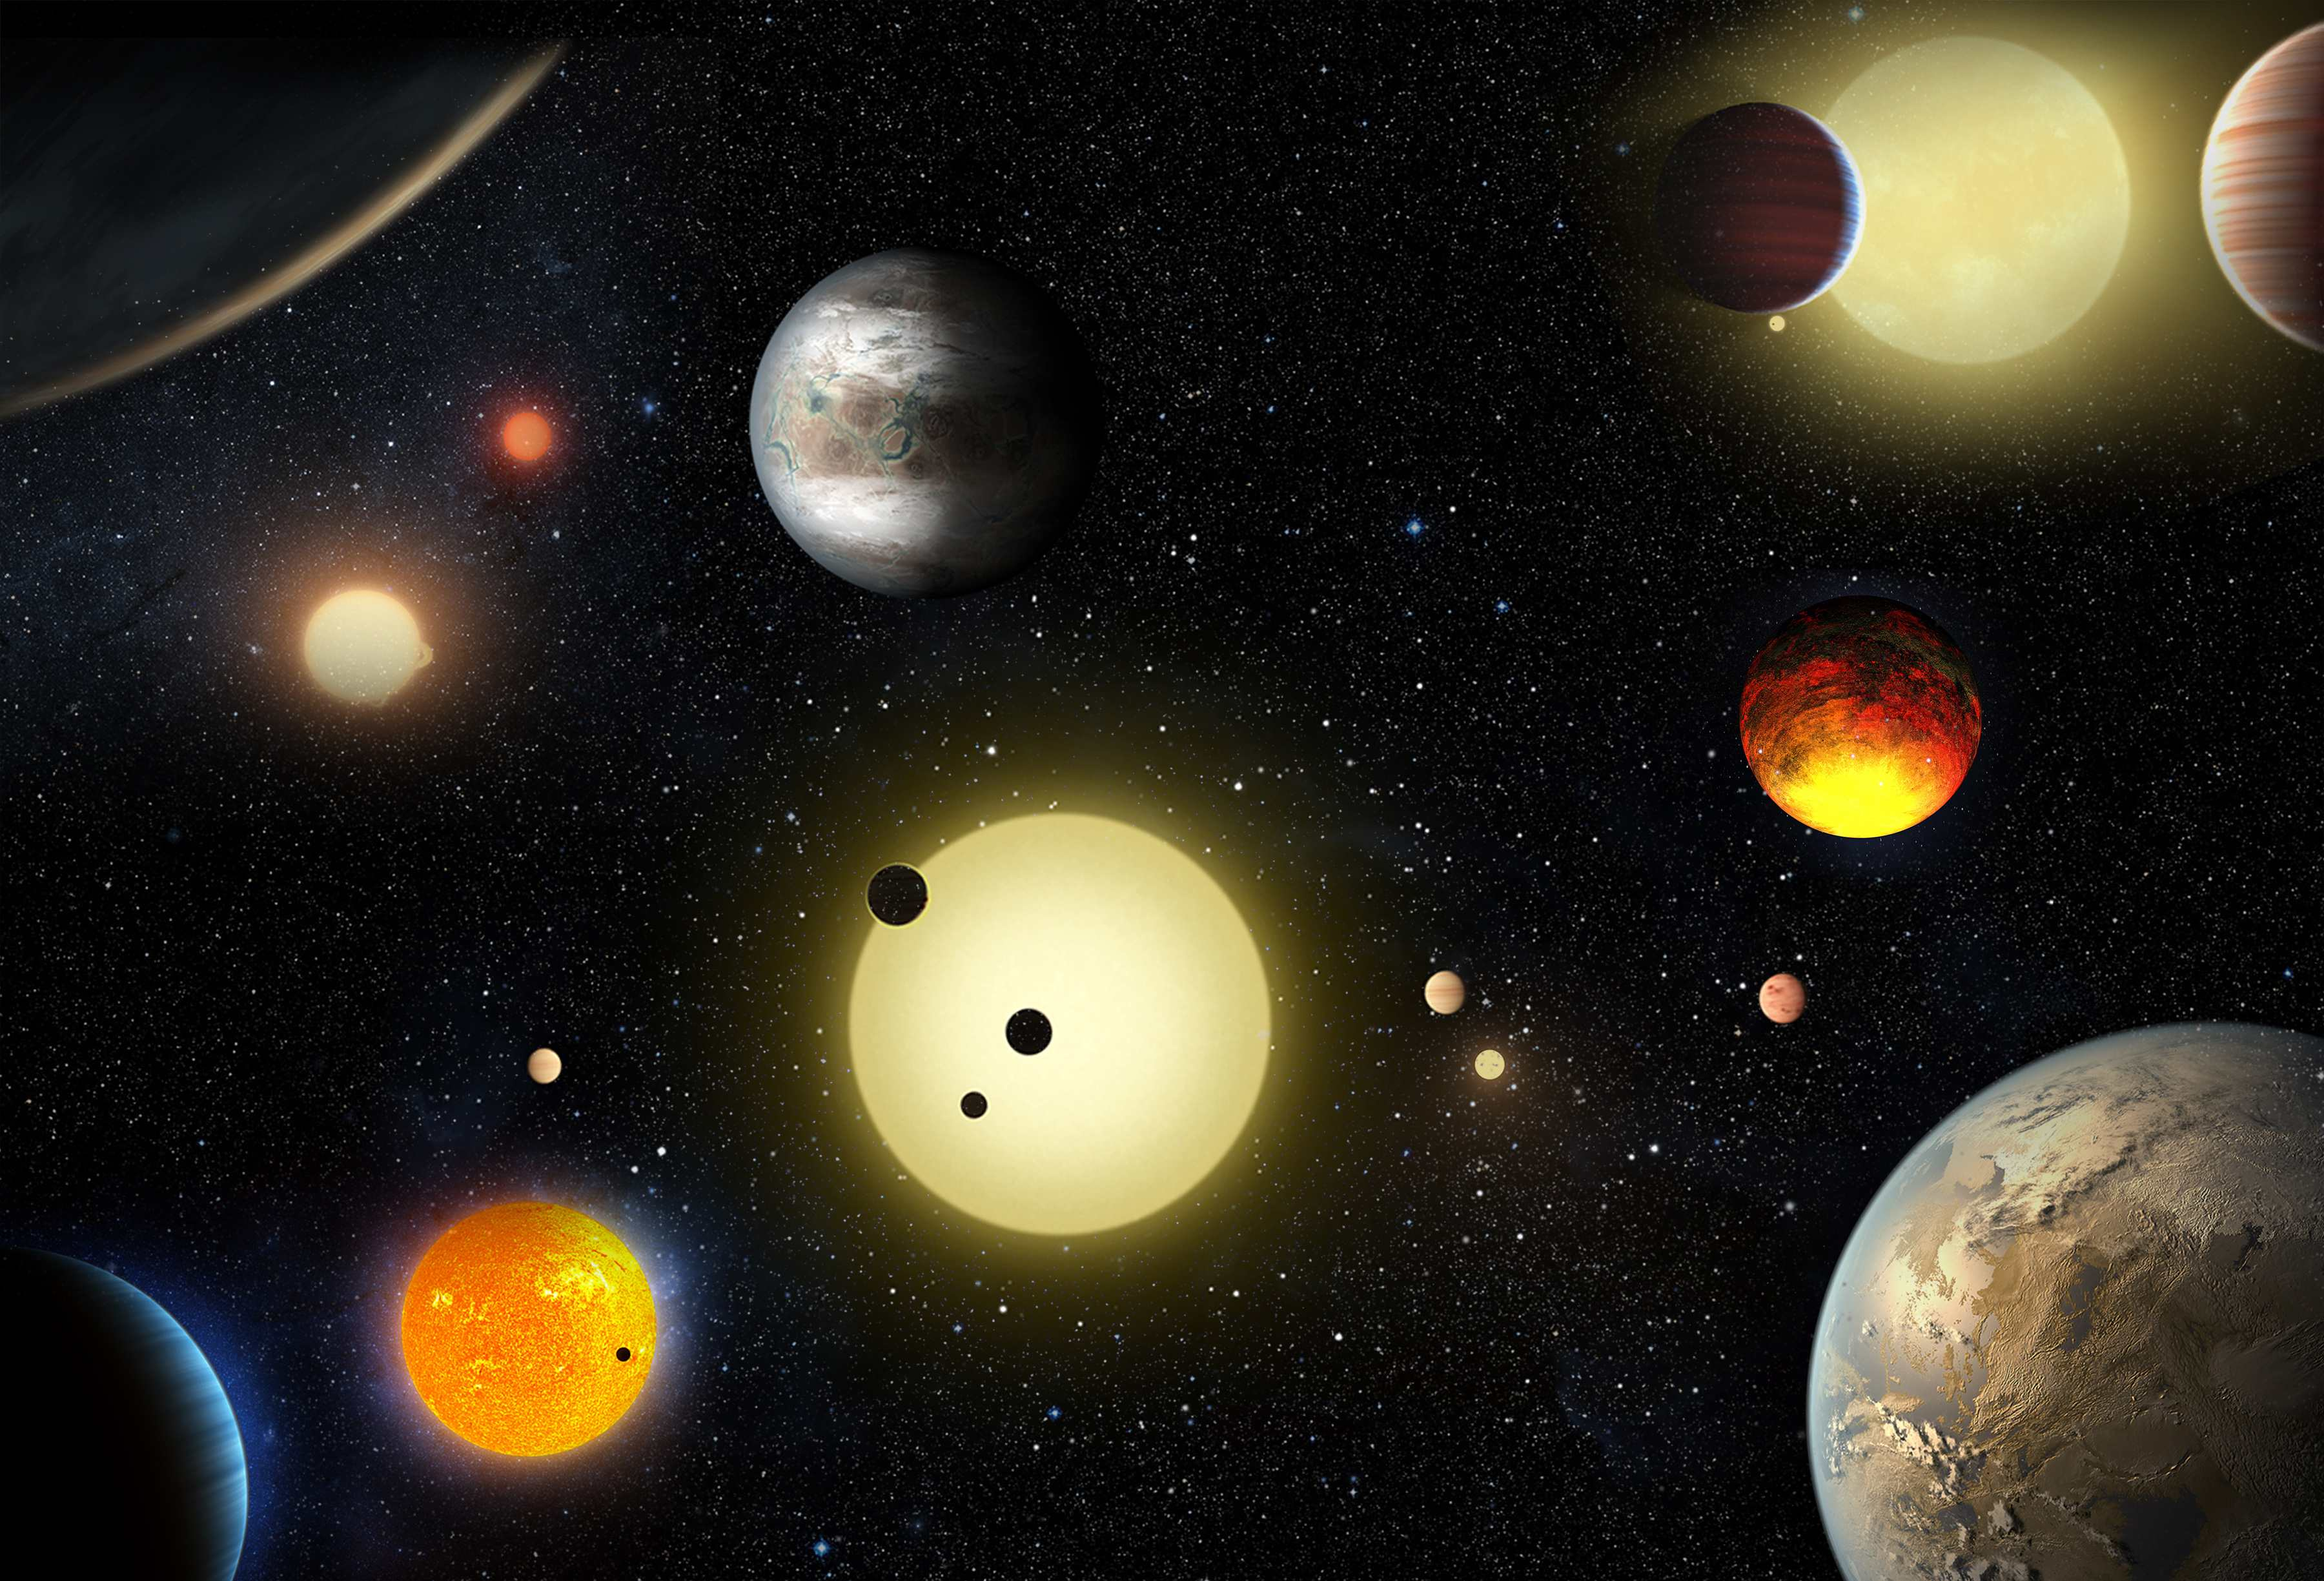 An artist's concept depicts select planetary discoveries made to date by NASA's Kepler space telescope